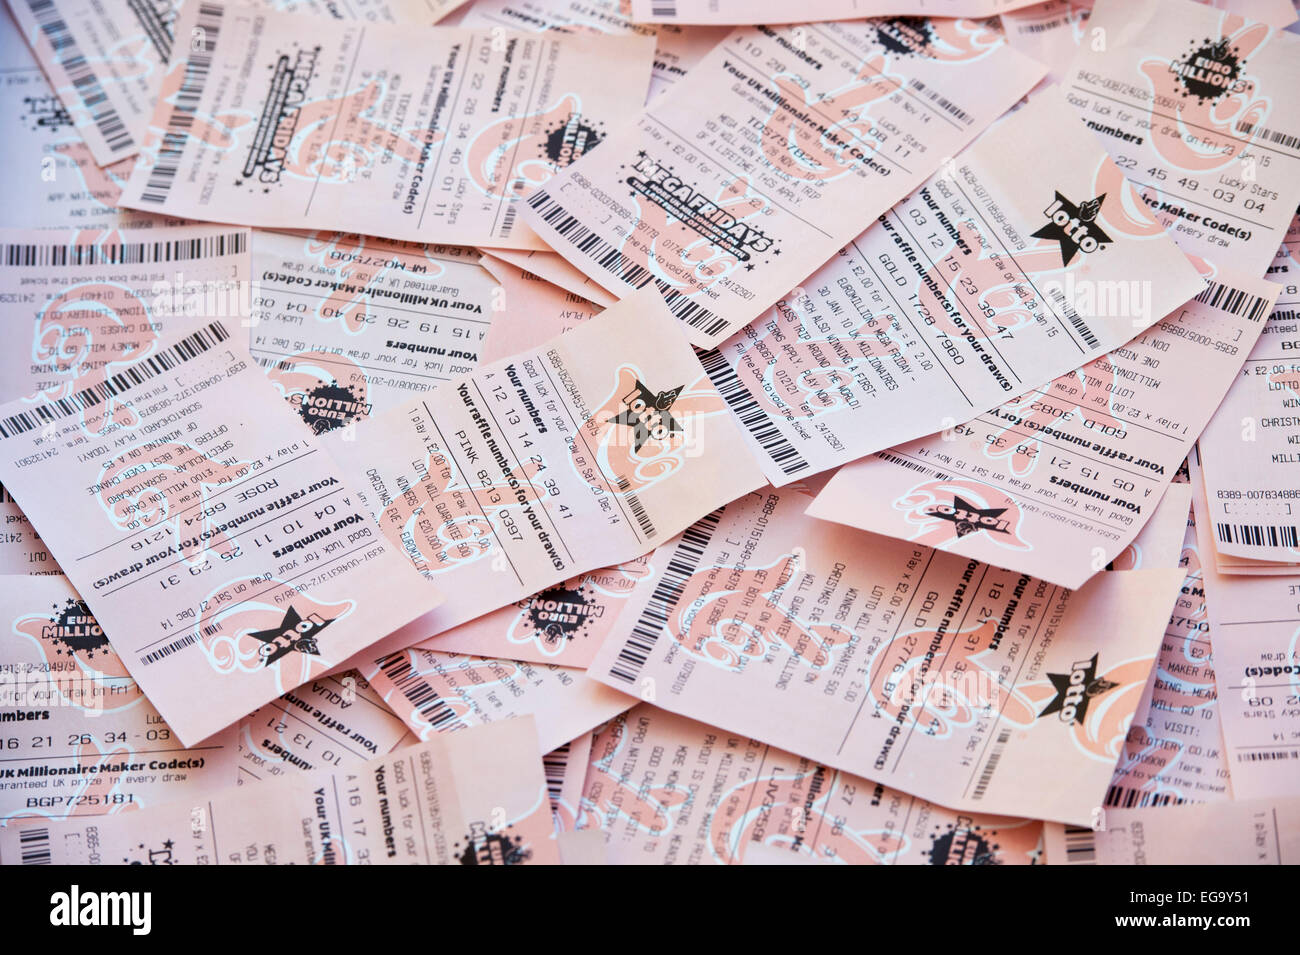 Lotto Euromillions National Lottery And Euromillions Tickets Stock Photo 78894845